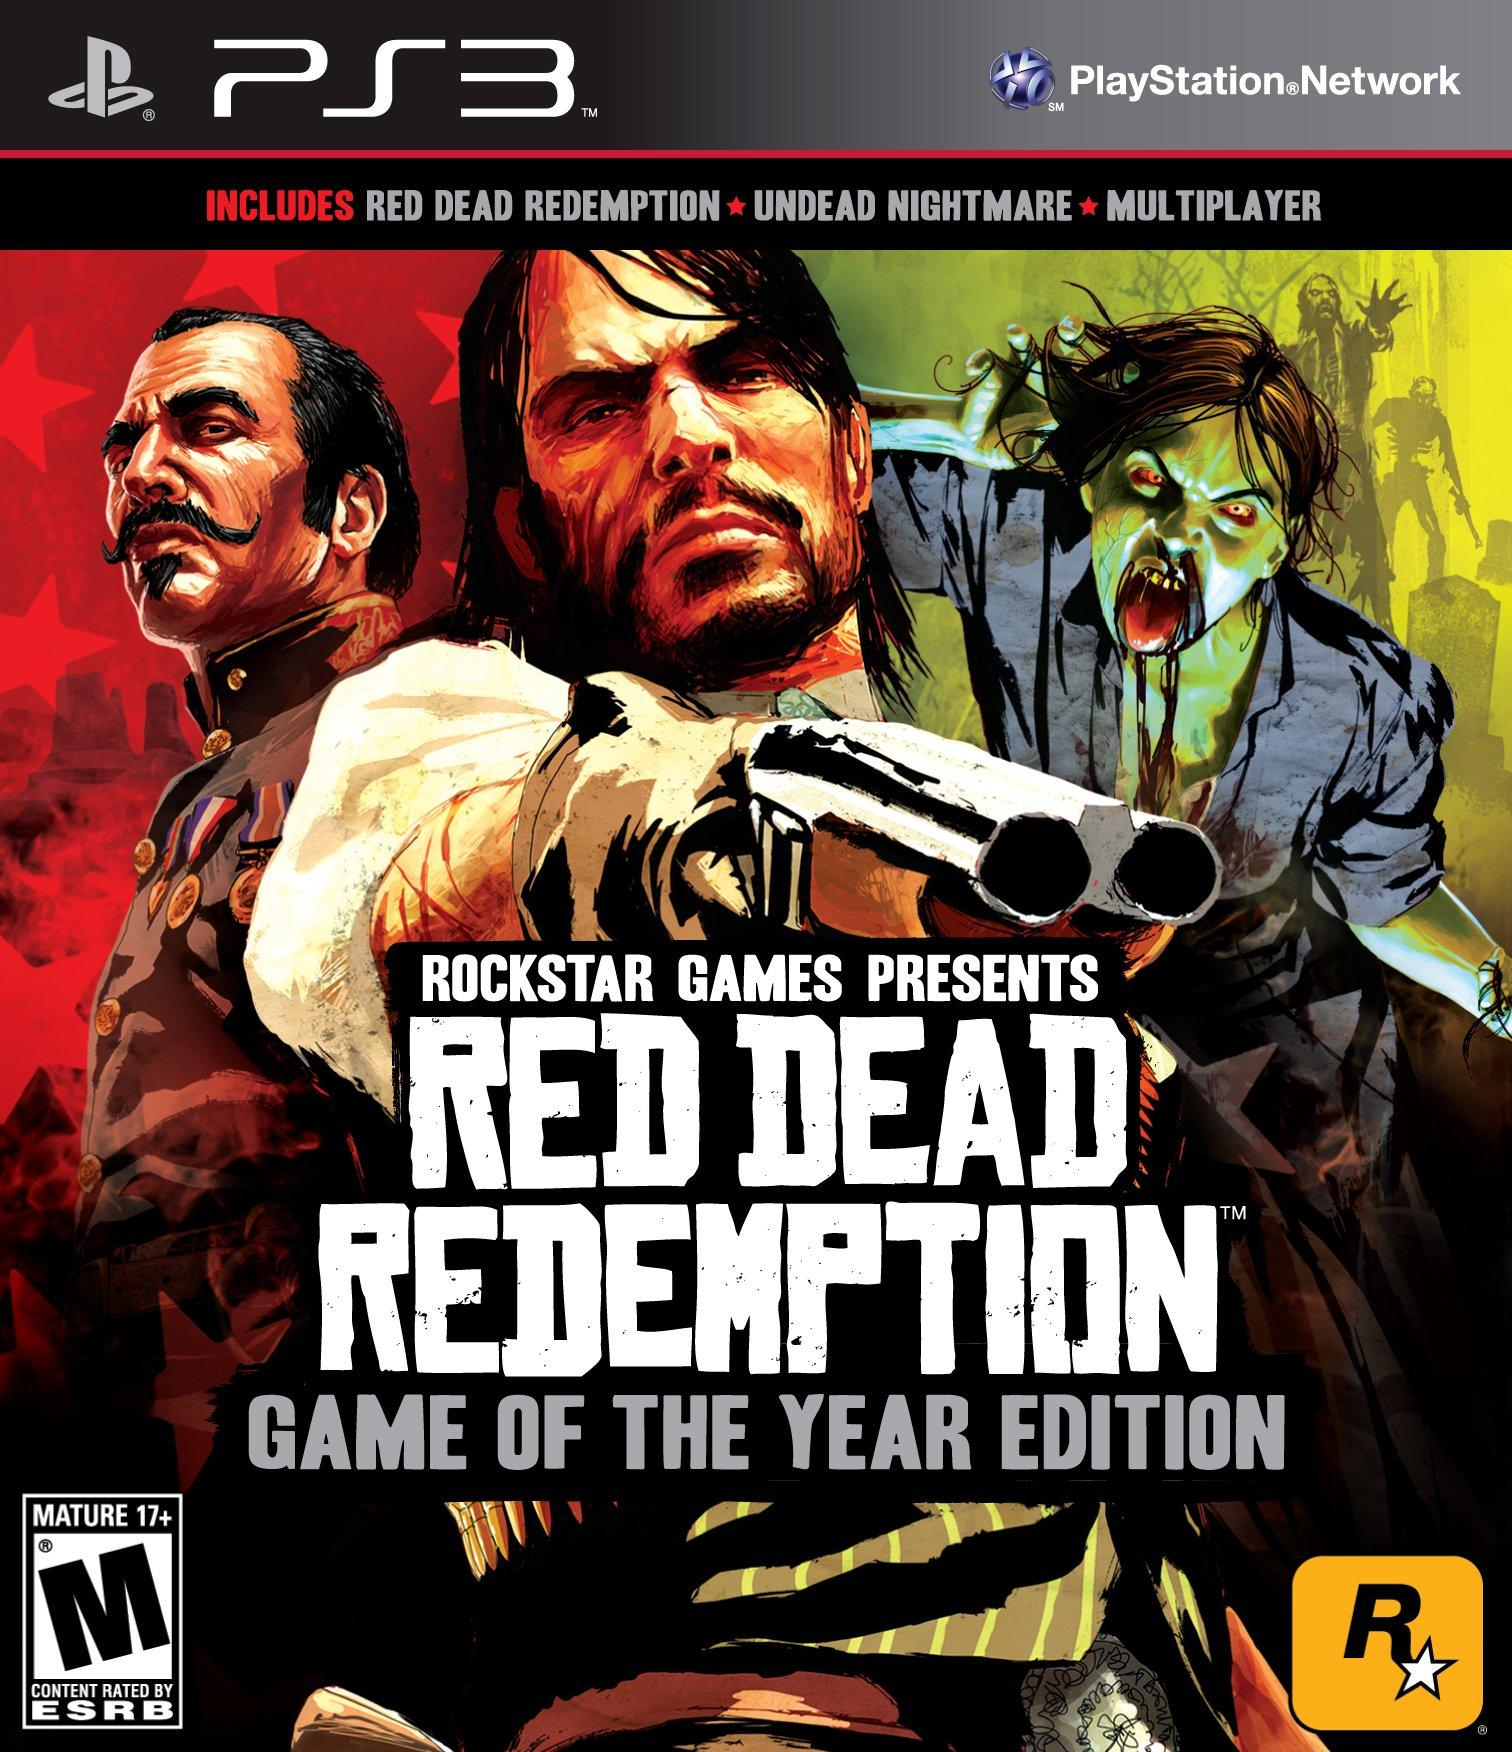 Red Dead Redemption Game of the Year Edition | PlayStation 3 | GameStop